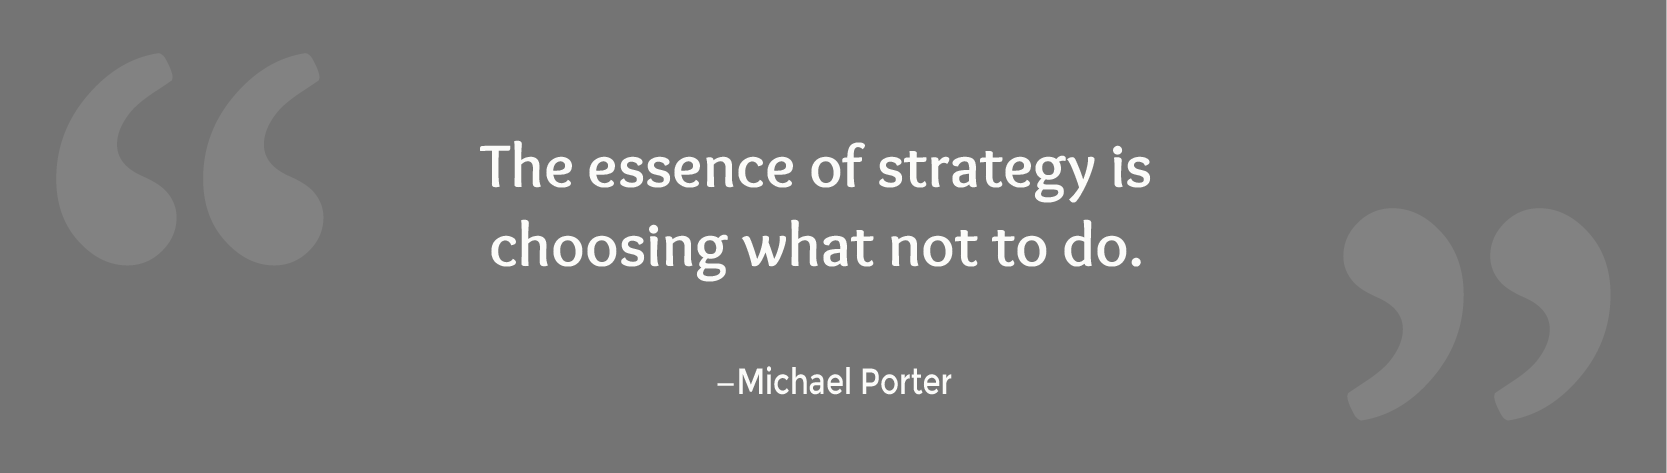 consulting-strategy-quotes-01.png